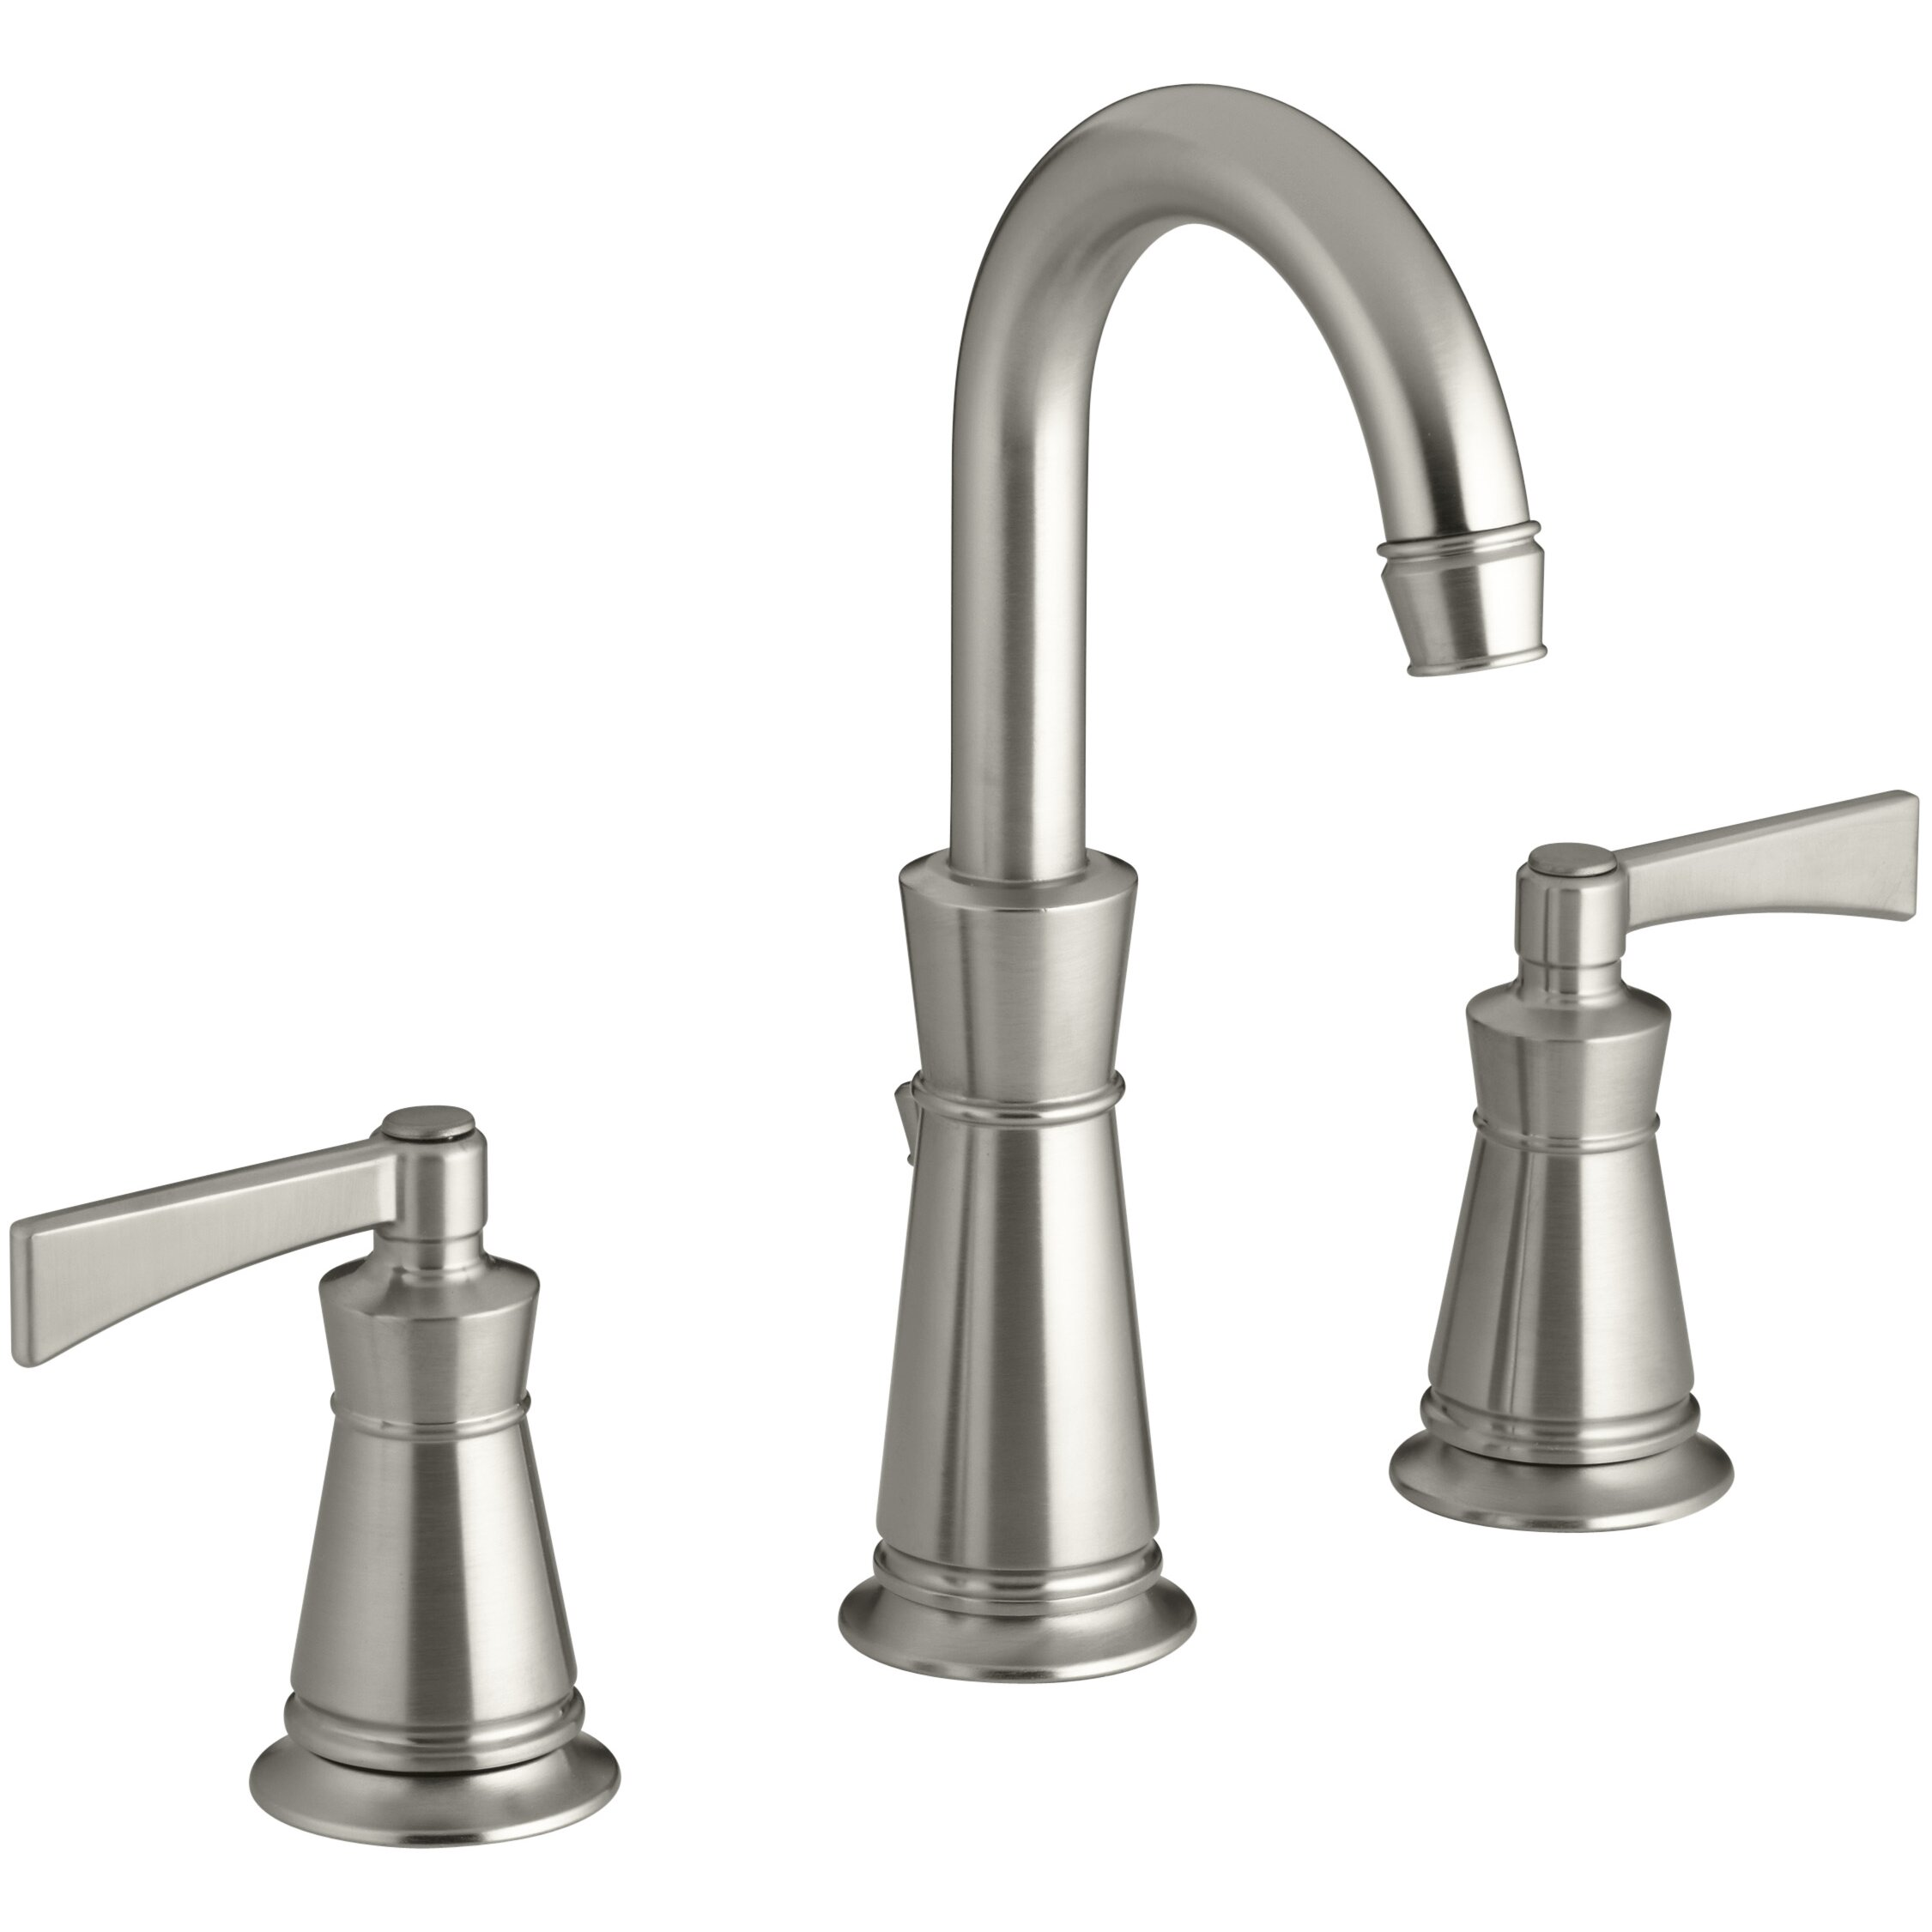 Kohler Bathroom Faucet Parts Bathroom Faucets Reviews: Kohler Kohler Archer Bathroom Faucet & Reviews